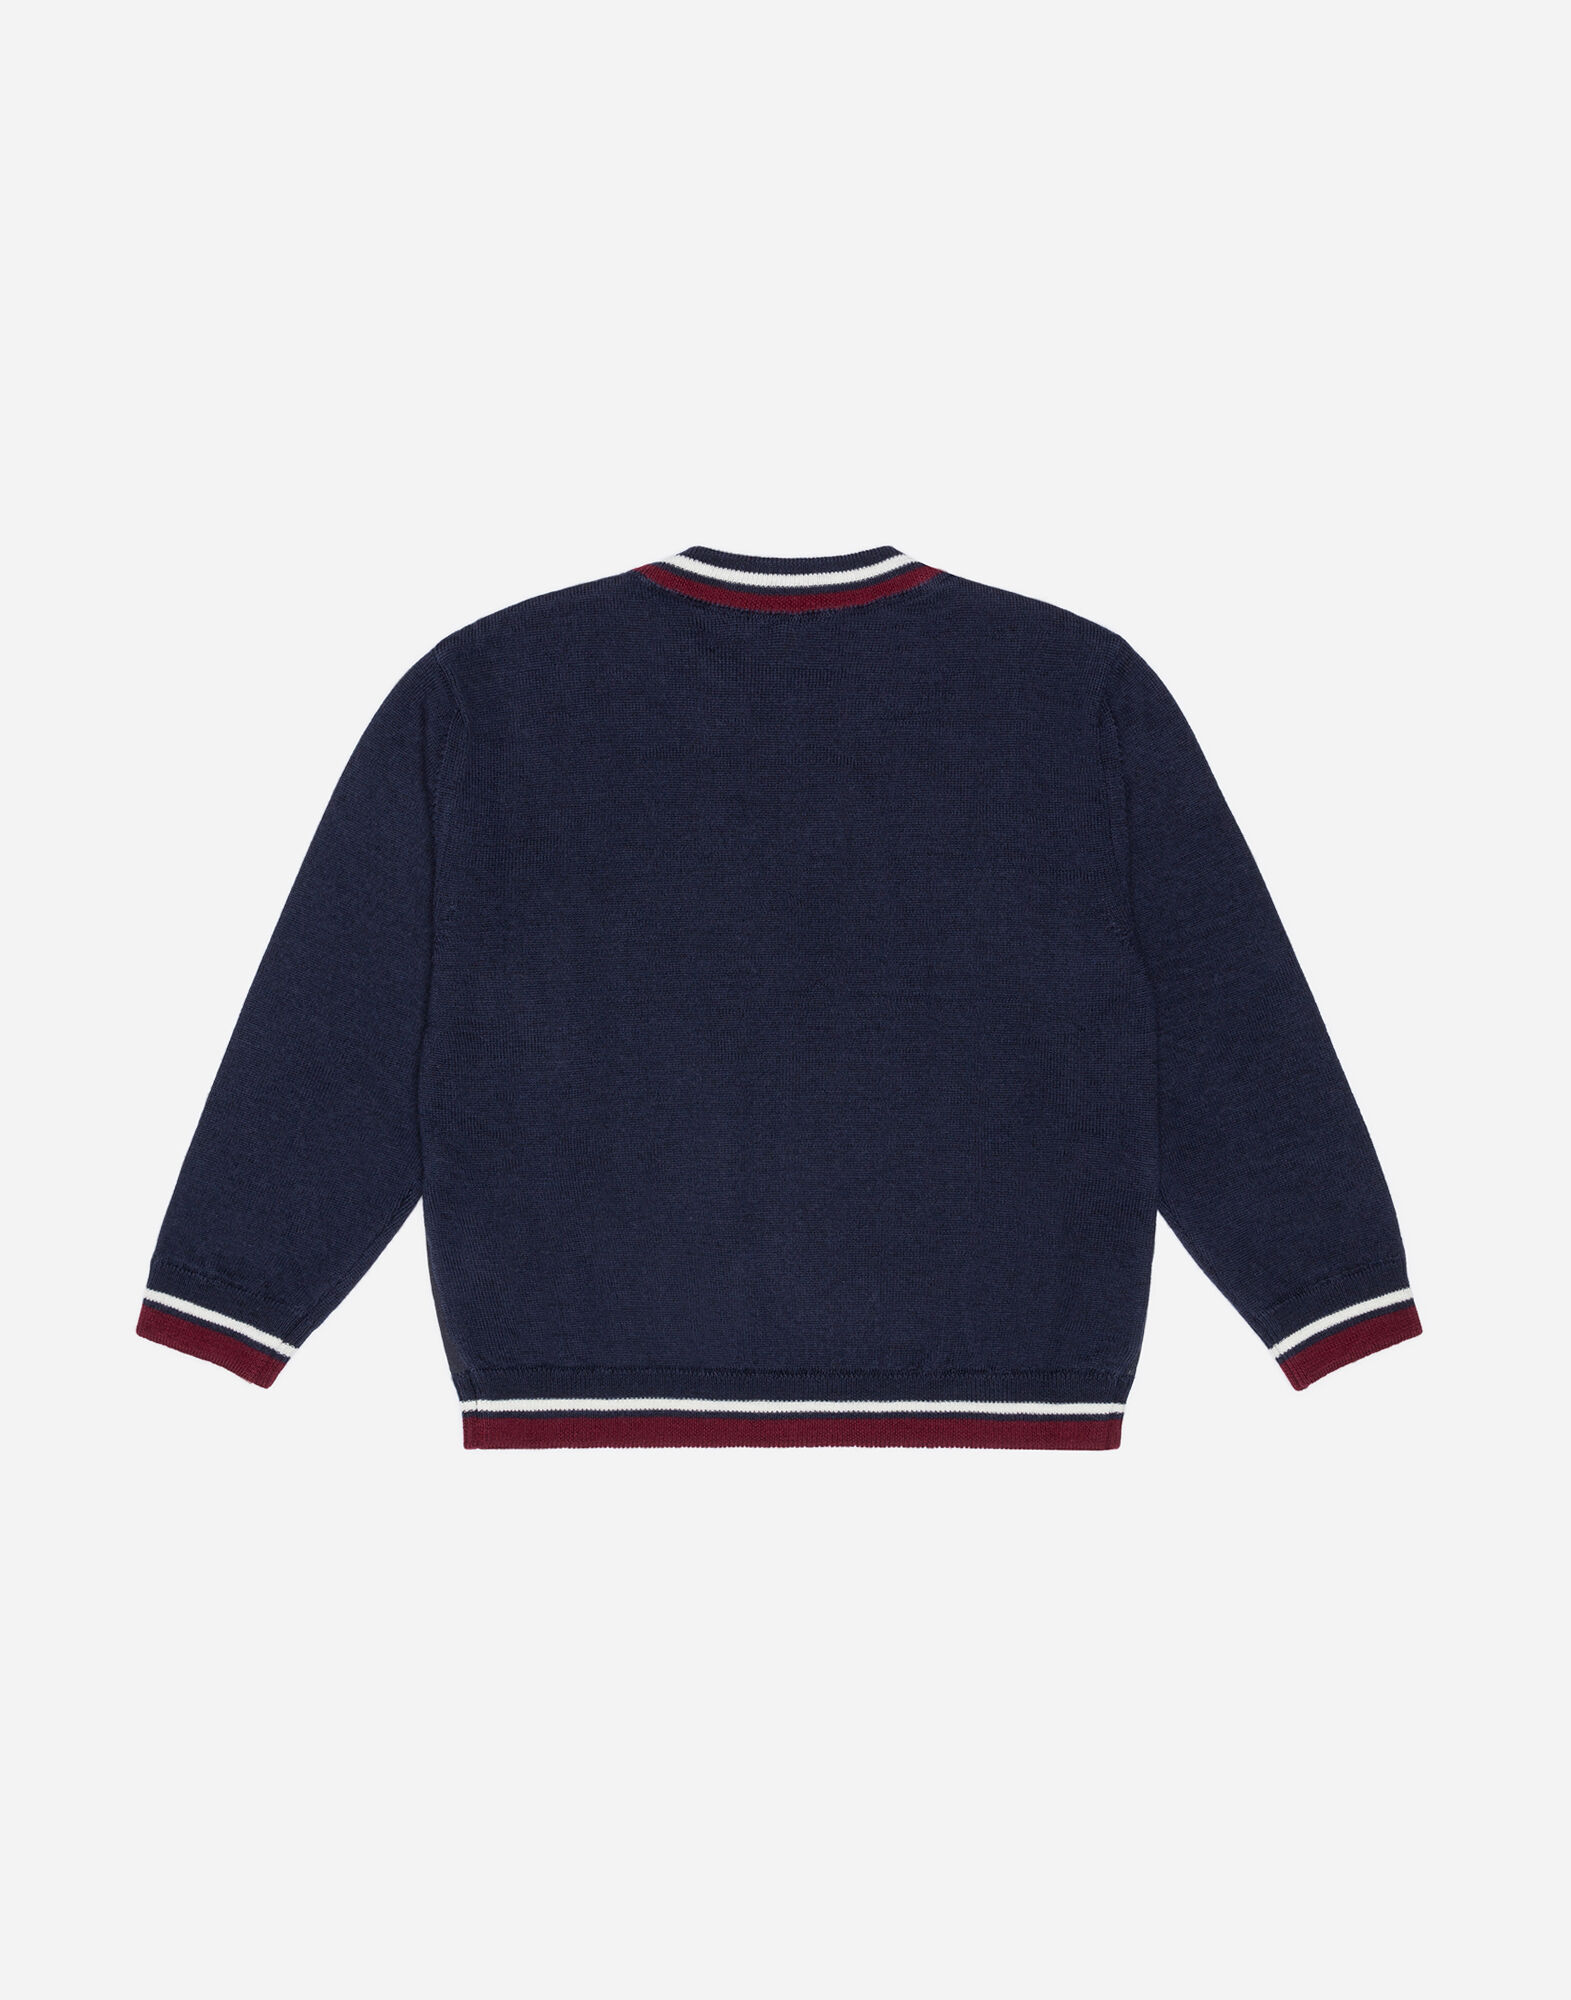 WOOL SWEATER WITH PANEL